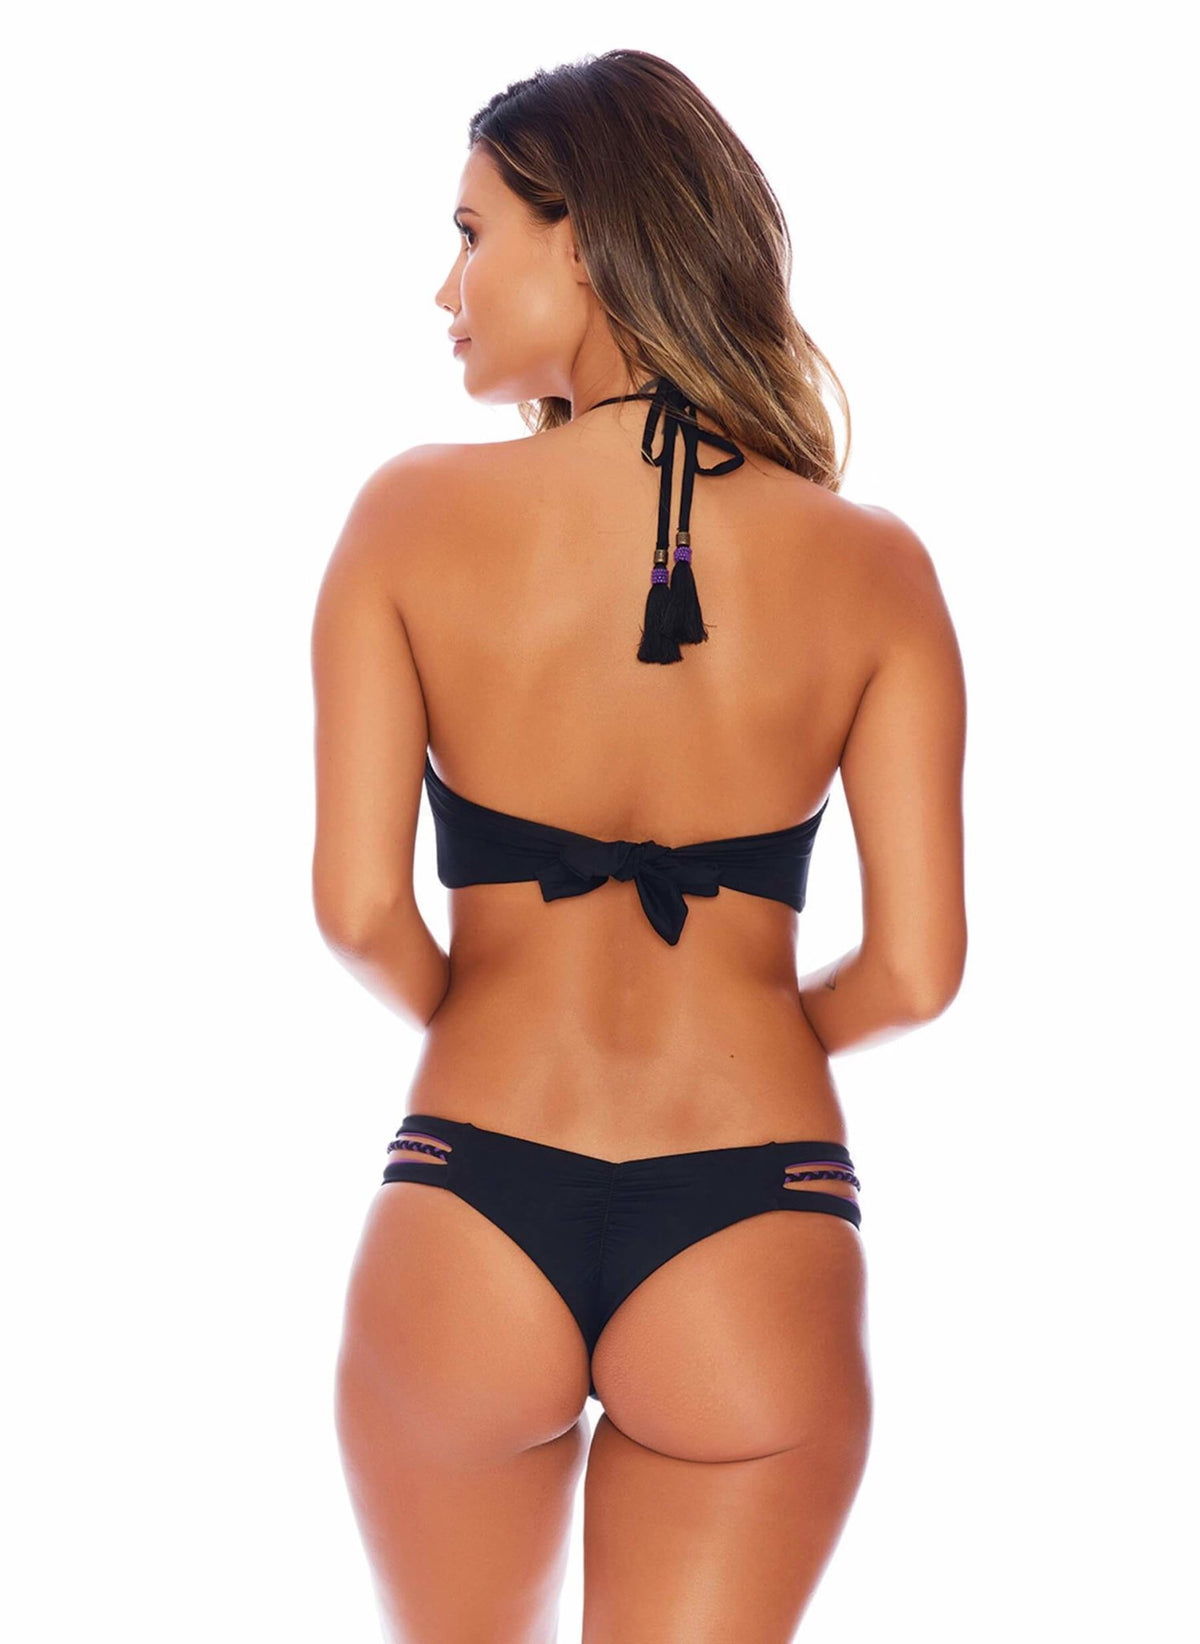 Reversible Black/Purple Peekaboo - Semi Brazilian